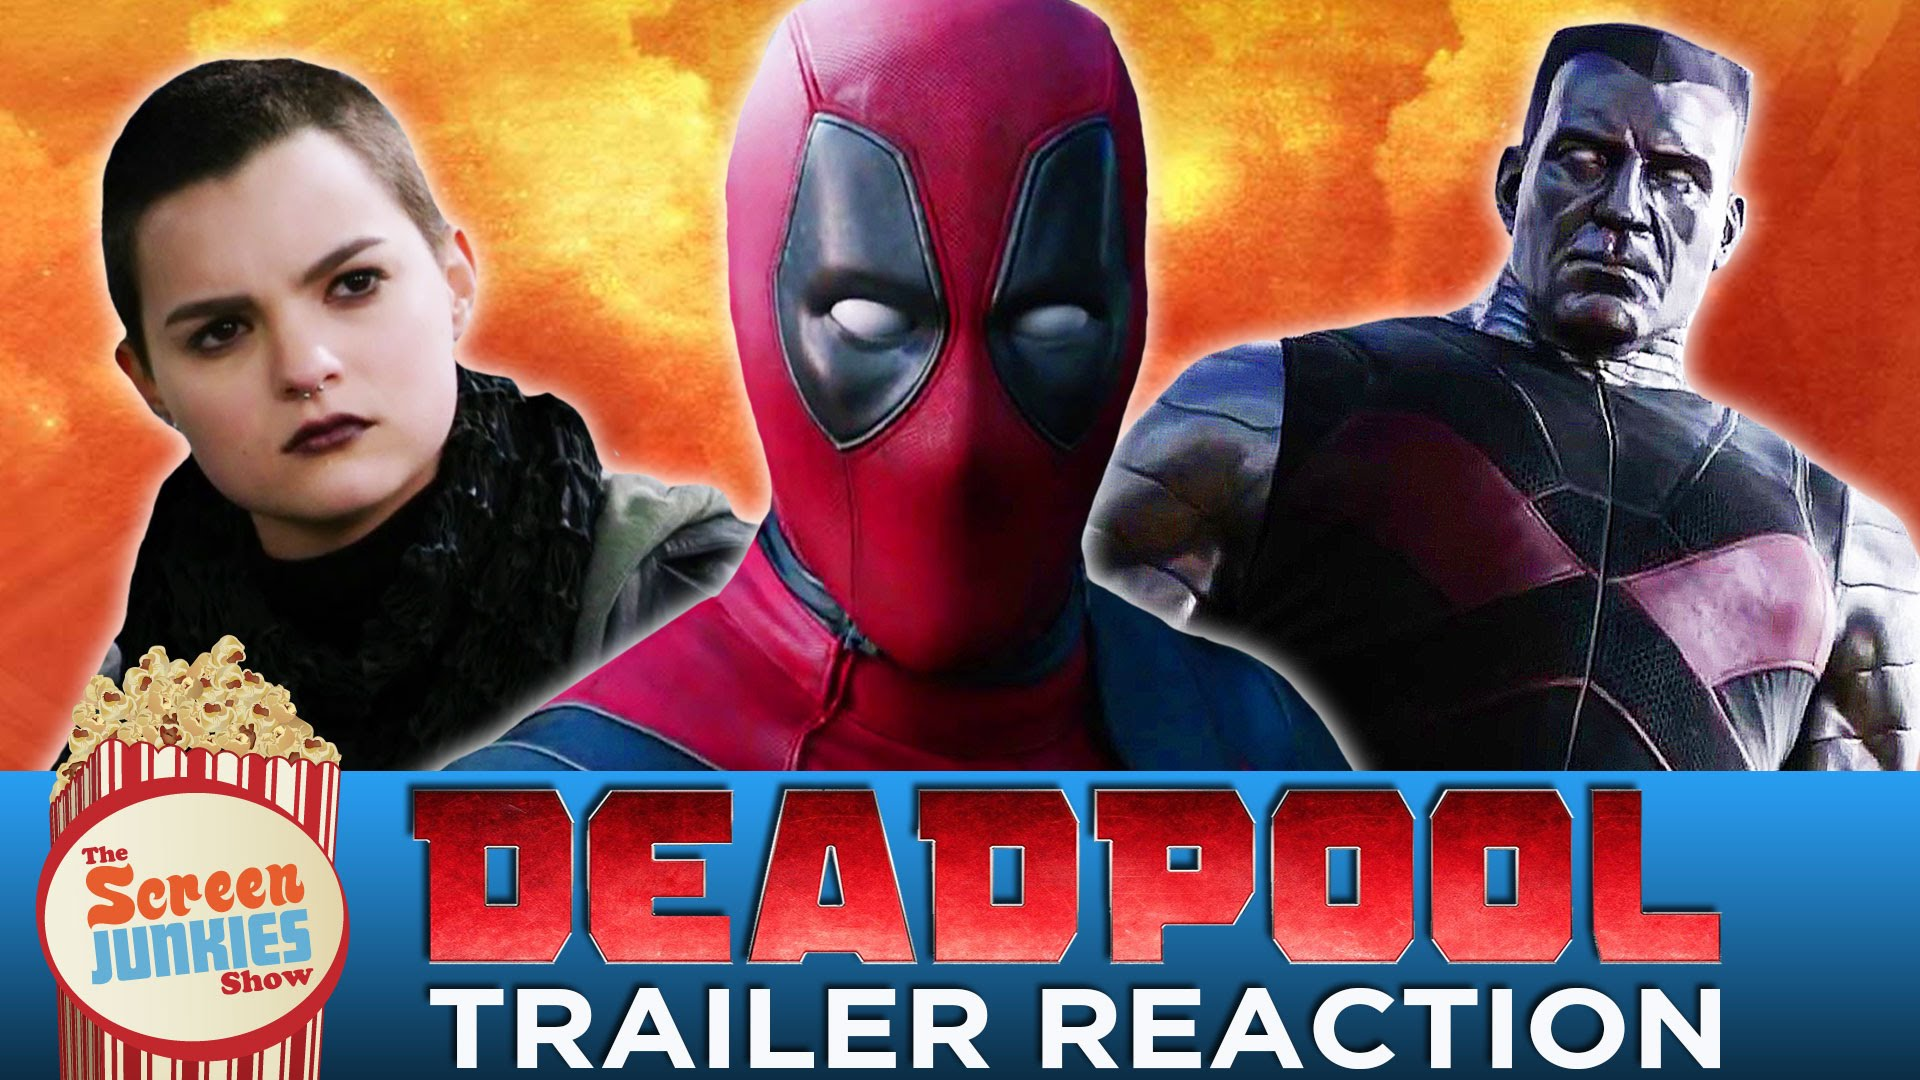 Deadpool Red Band Trailer Reaction: Hit or Miss?